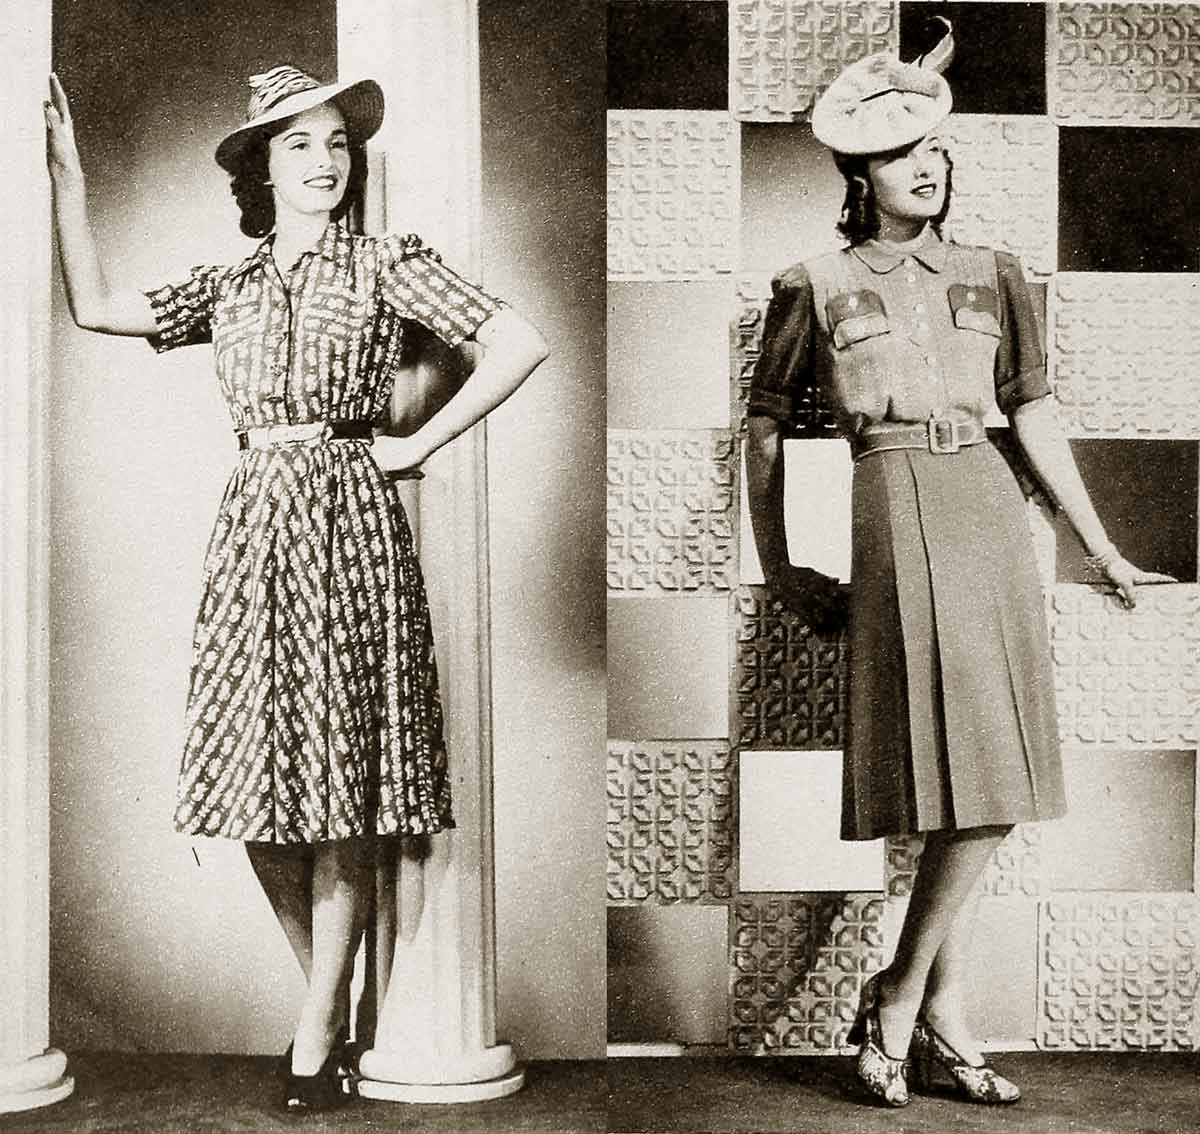 Winter fashion 1941 - Smart frocks and hats for early 1940's style